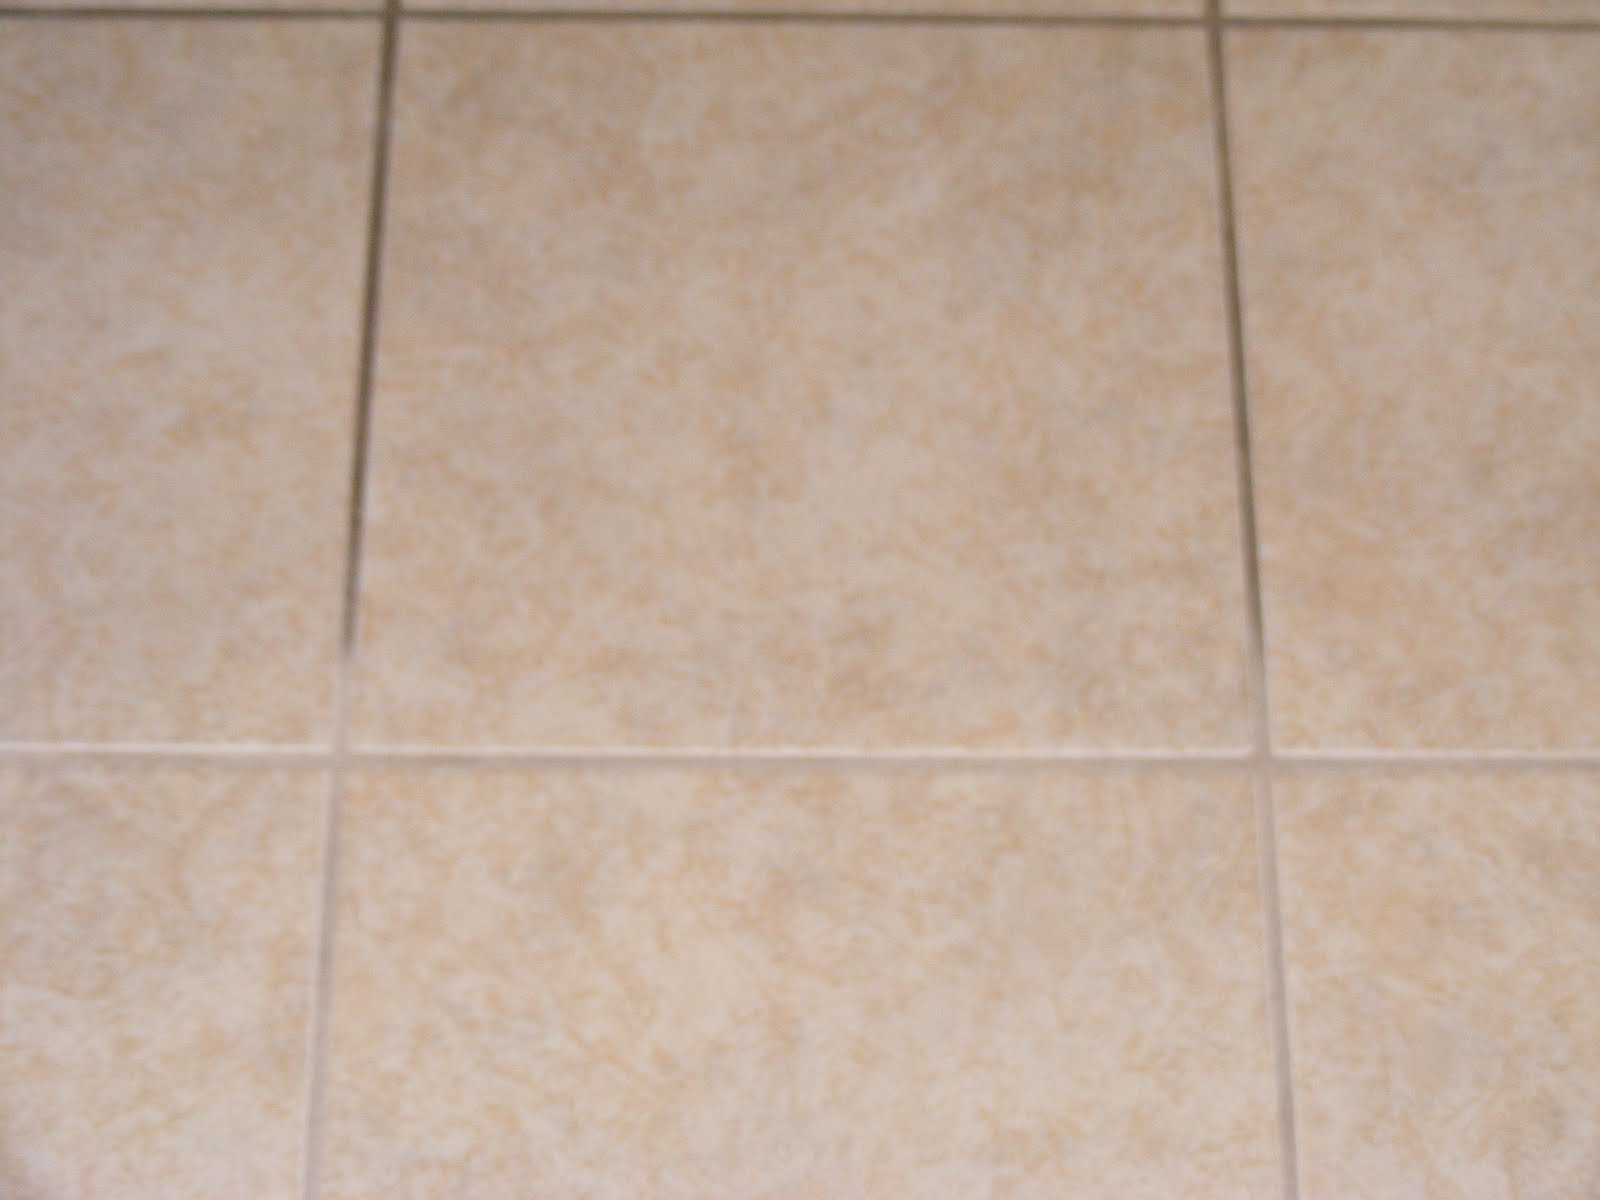 Best Grout Sealer For Kitchen Floor Amazing Grout Cleaner